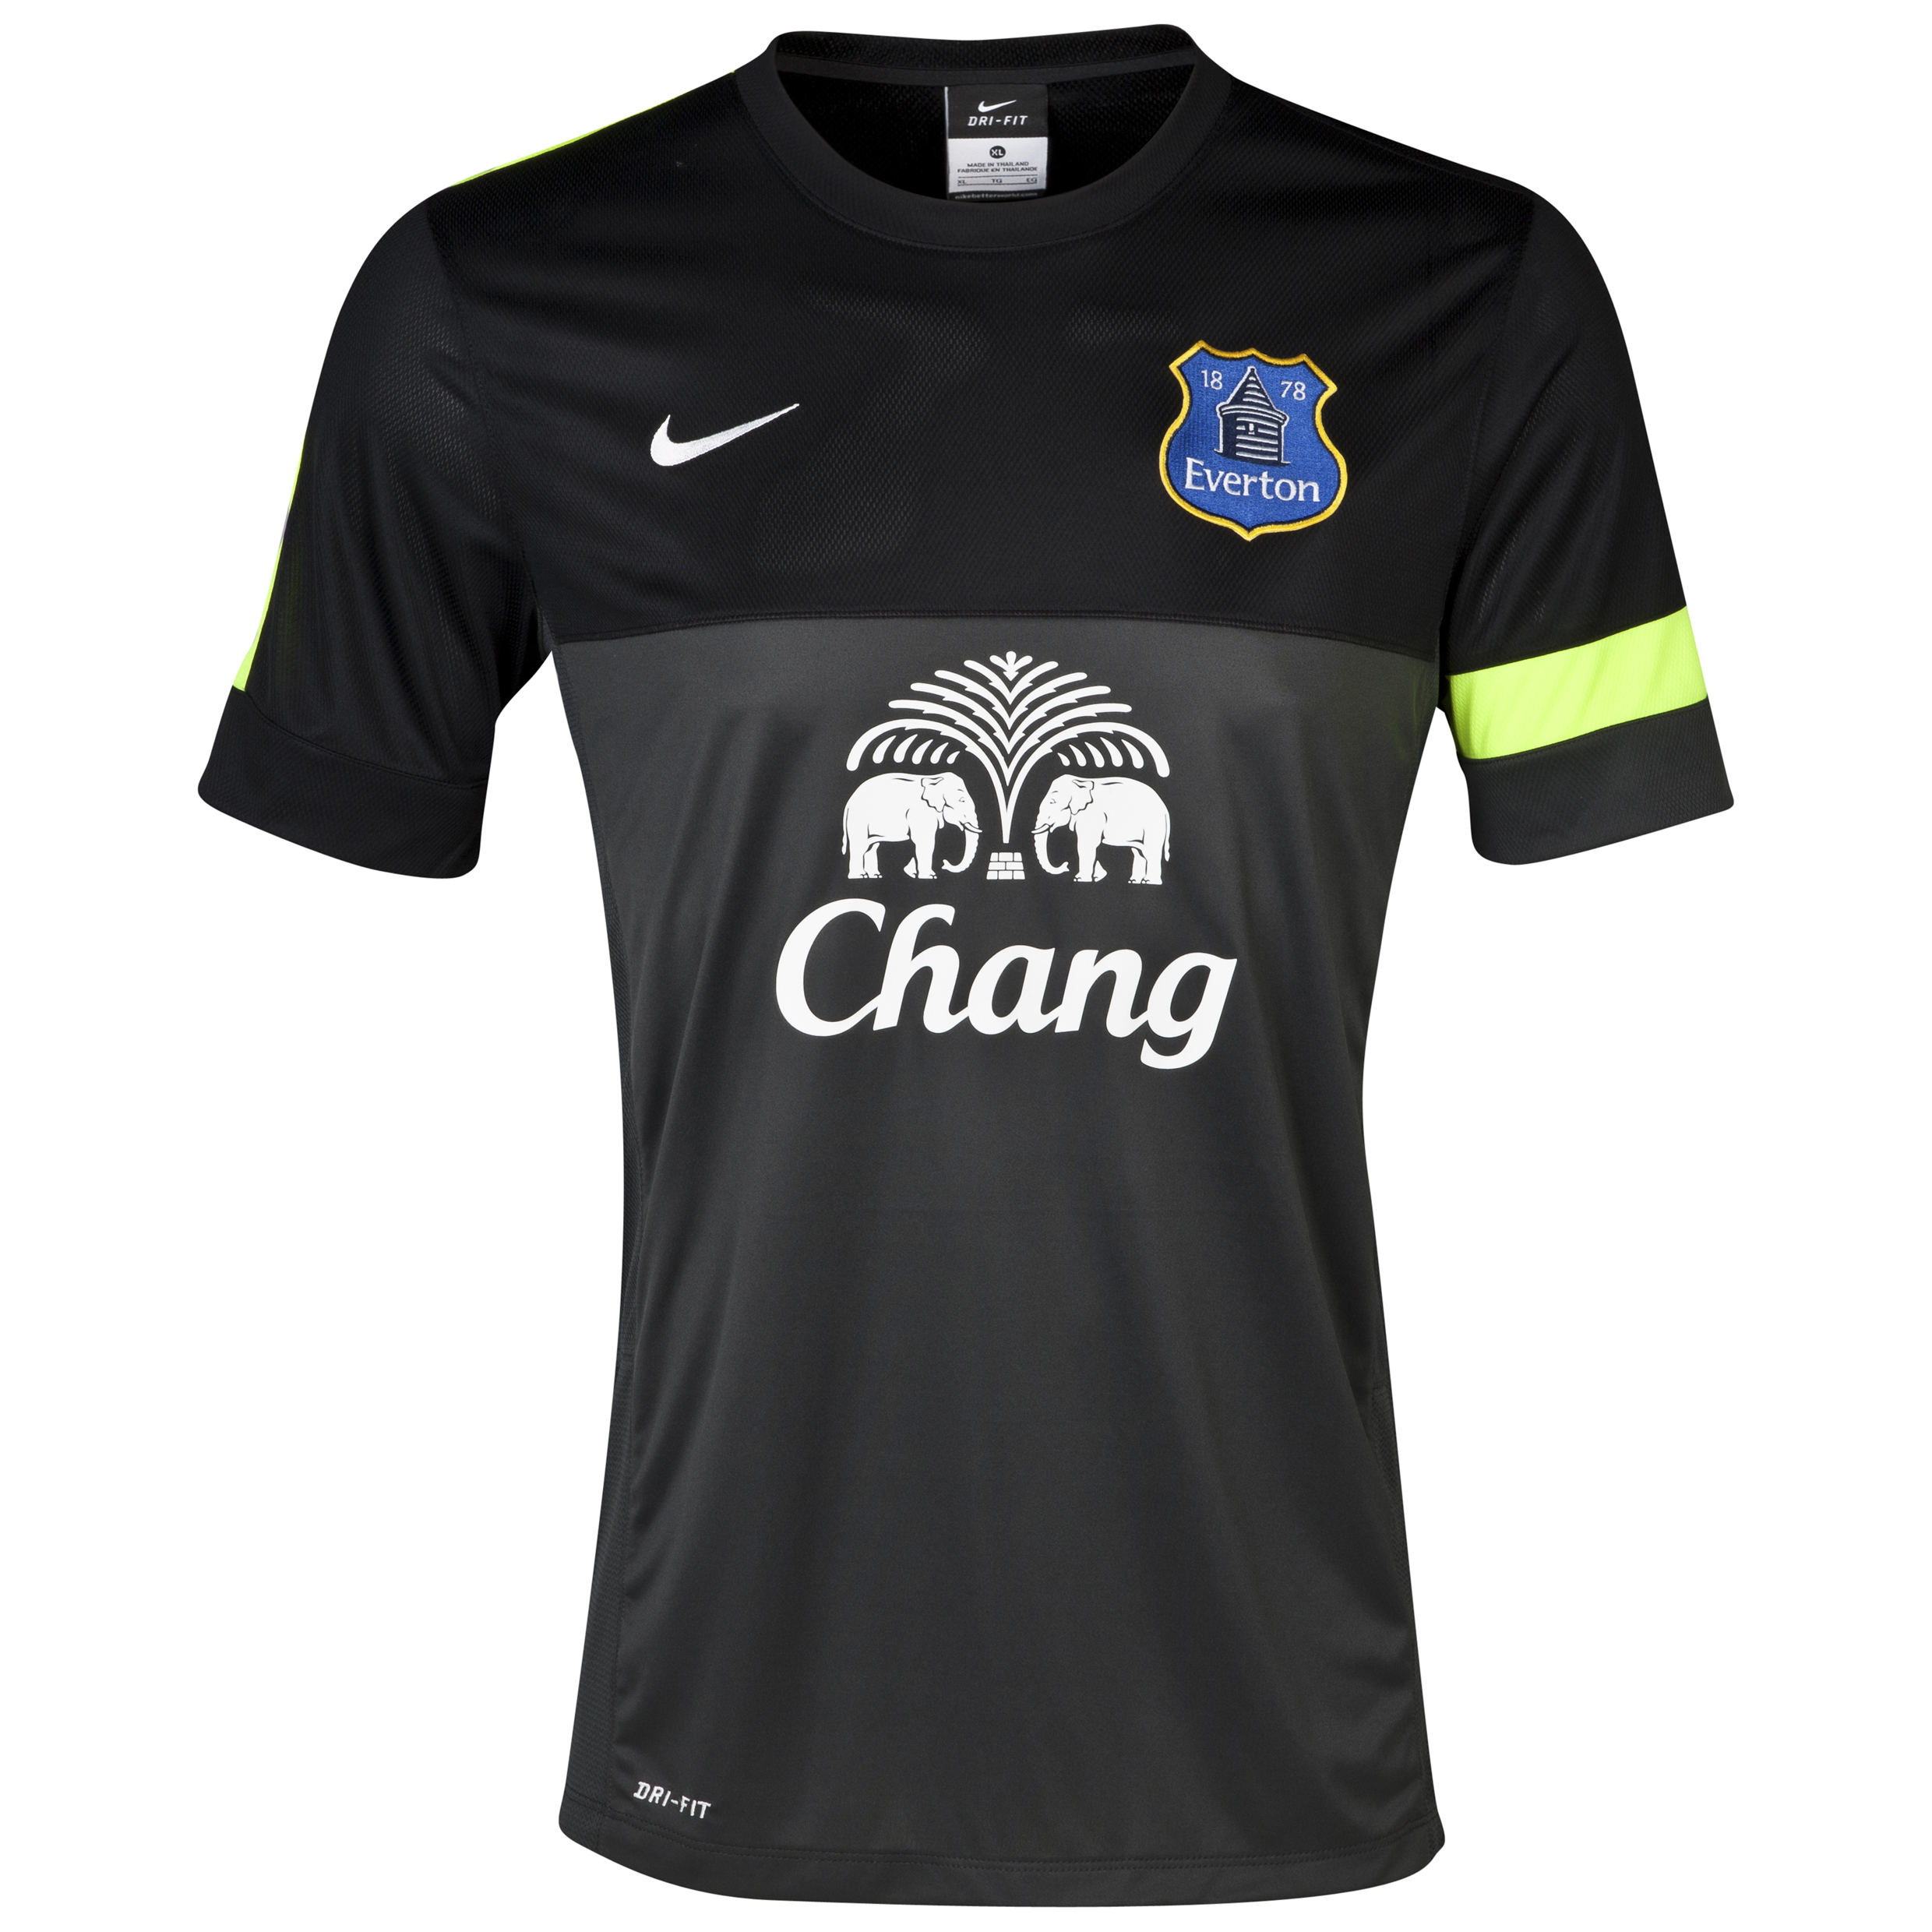 Everton Training T-Shirt Grey